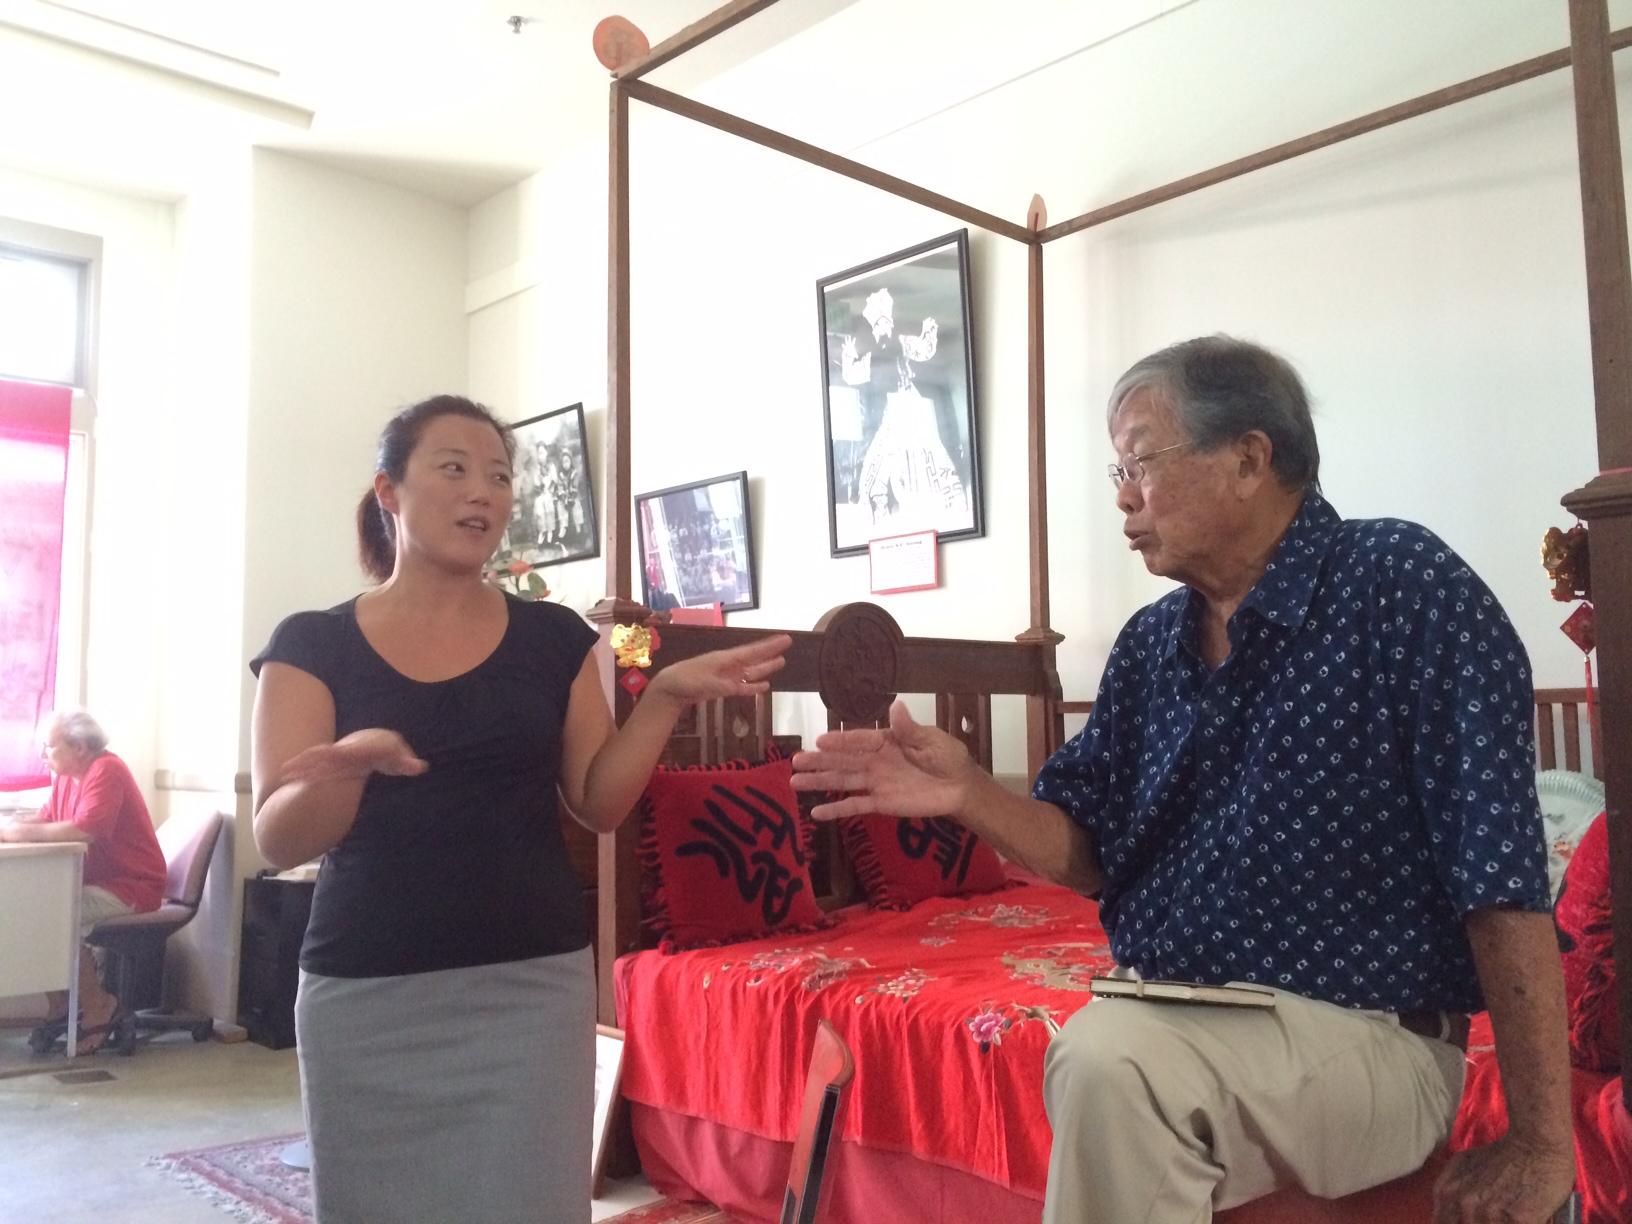 Sharon Gi and Don Goo discuss the economics of development in Chinatown and what the public and private sectors can do.